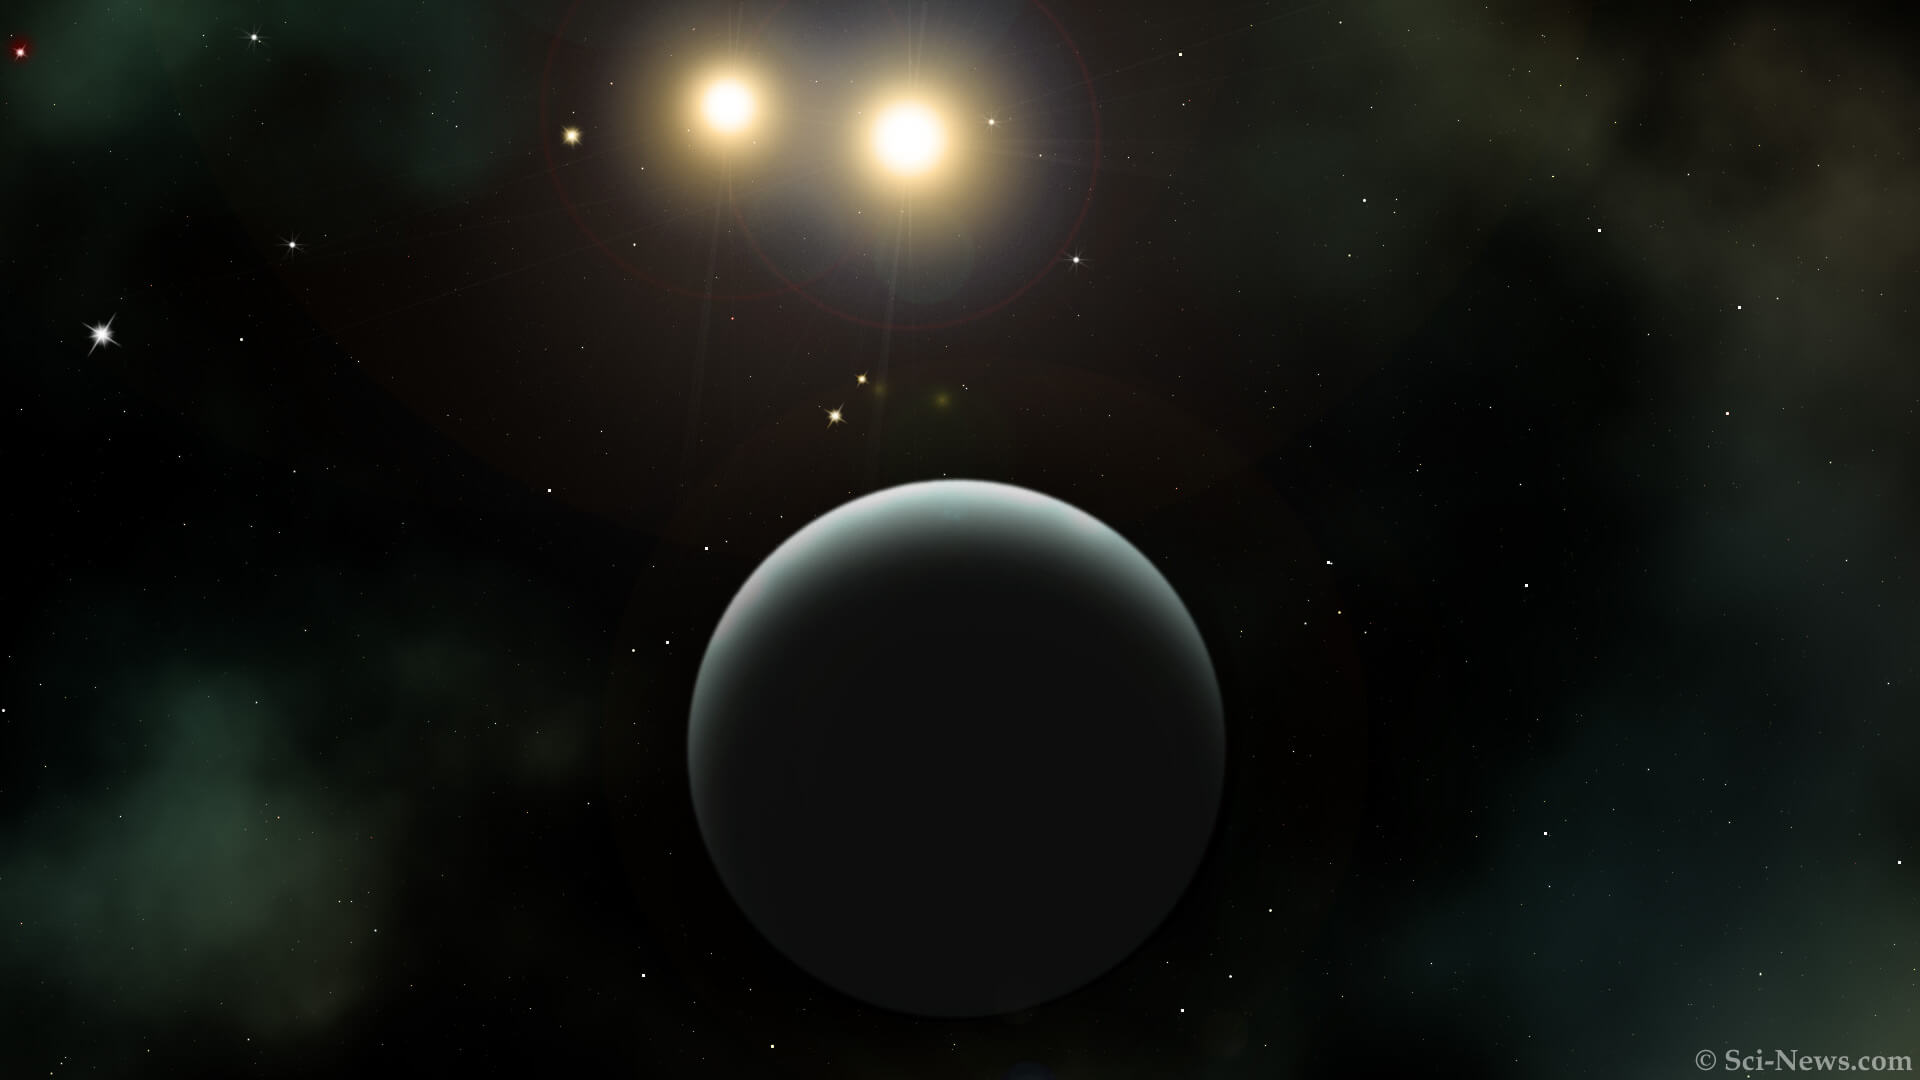 An artist's impression of TIC 172900988b and its two host stars. Photo Credit: Sci-News